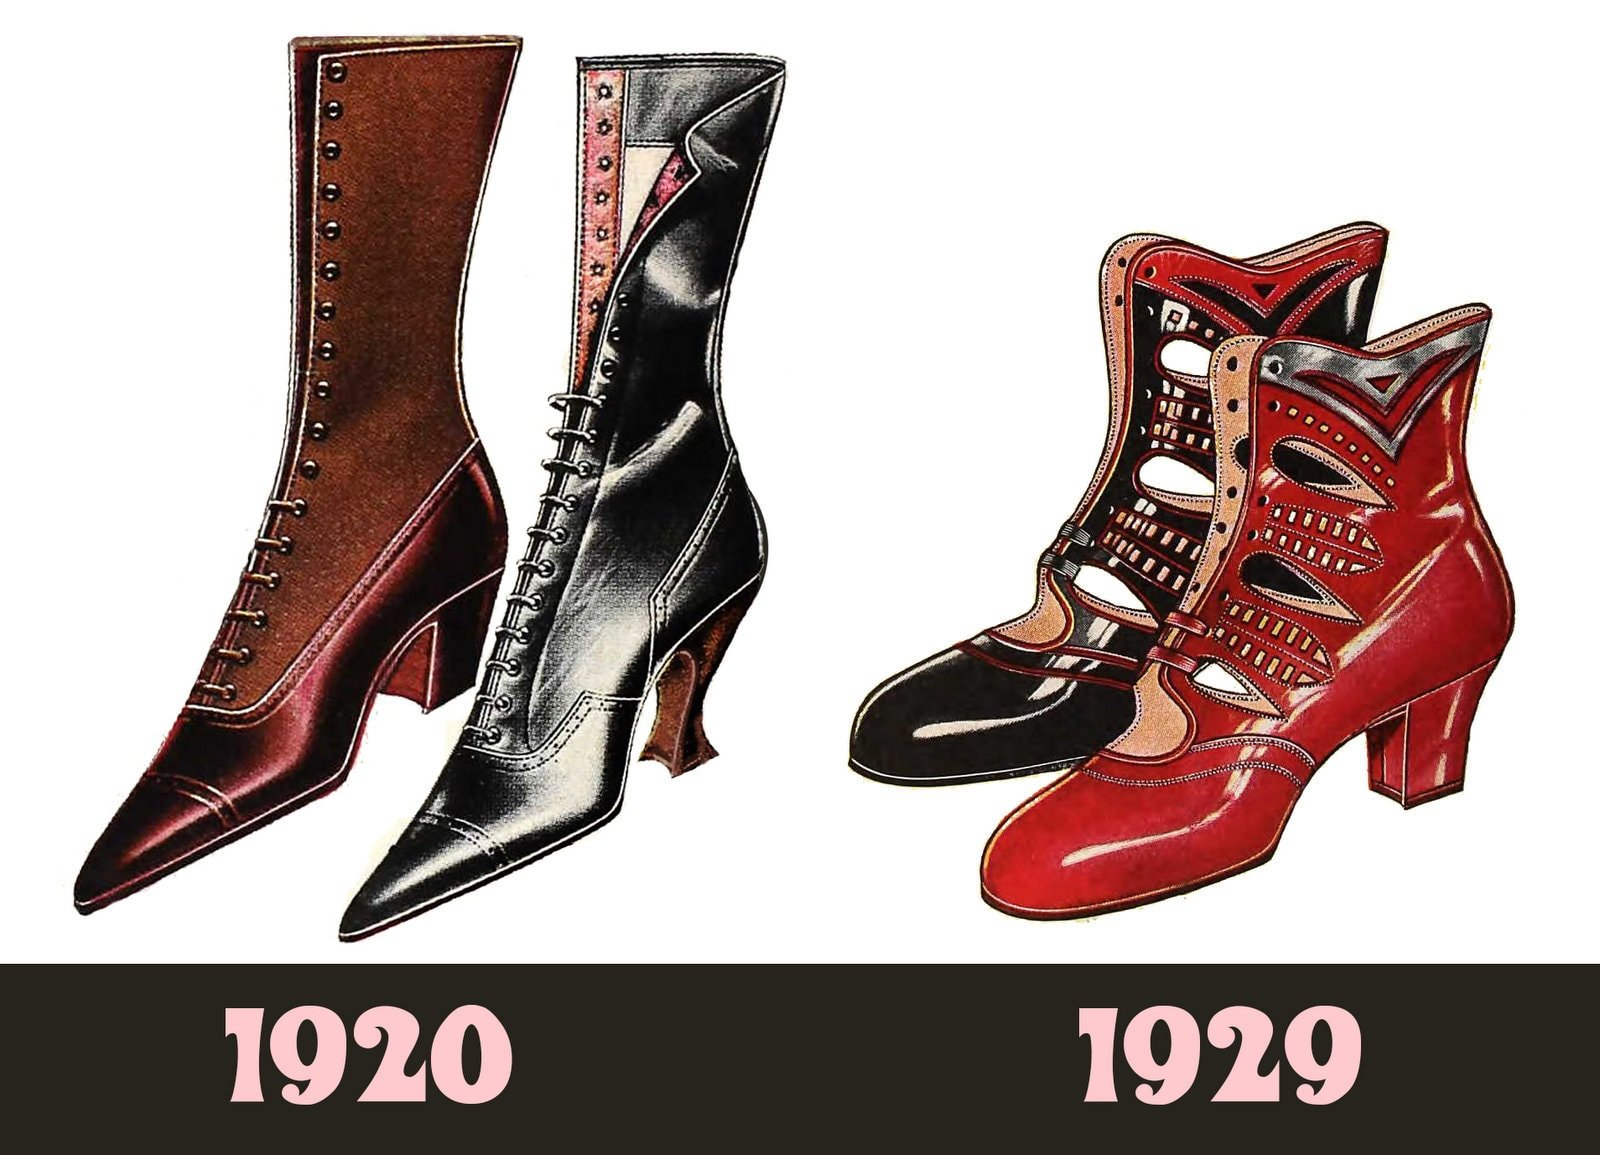 Shoes from 1920 vs 1929